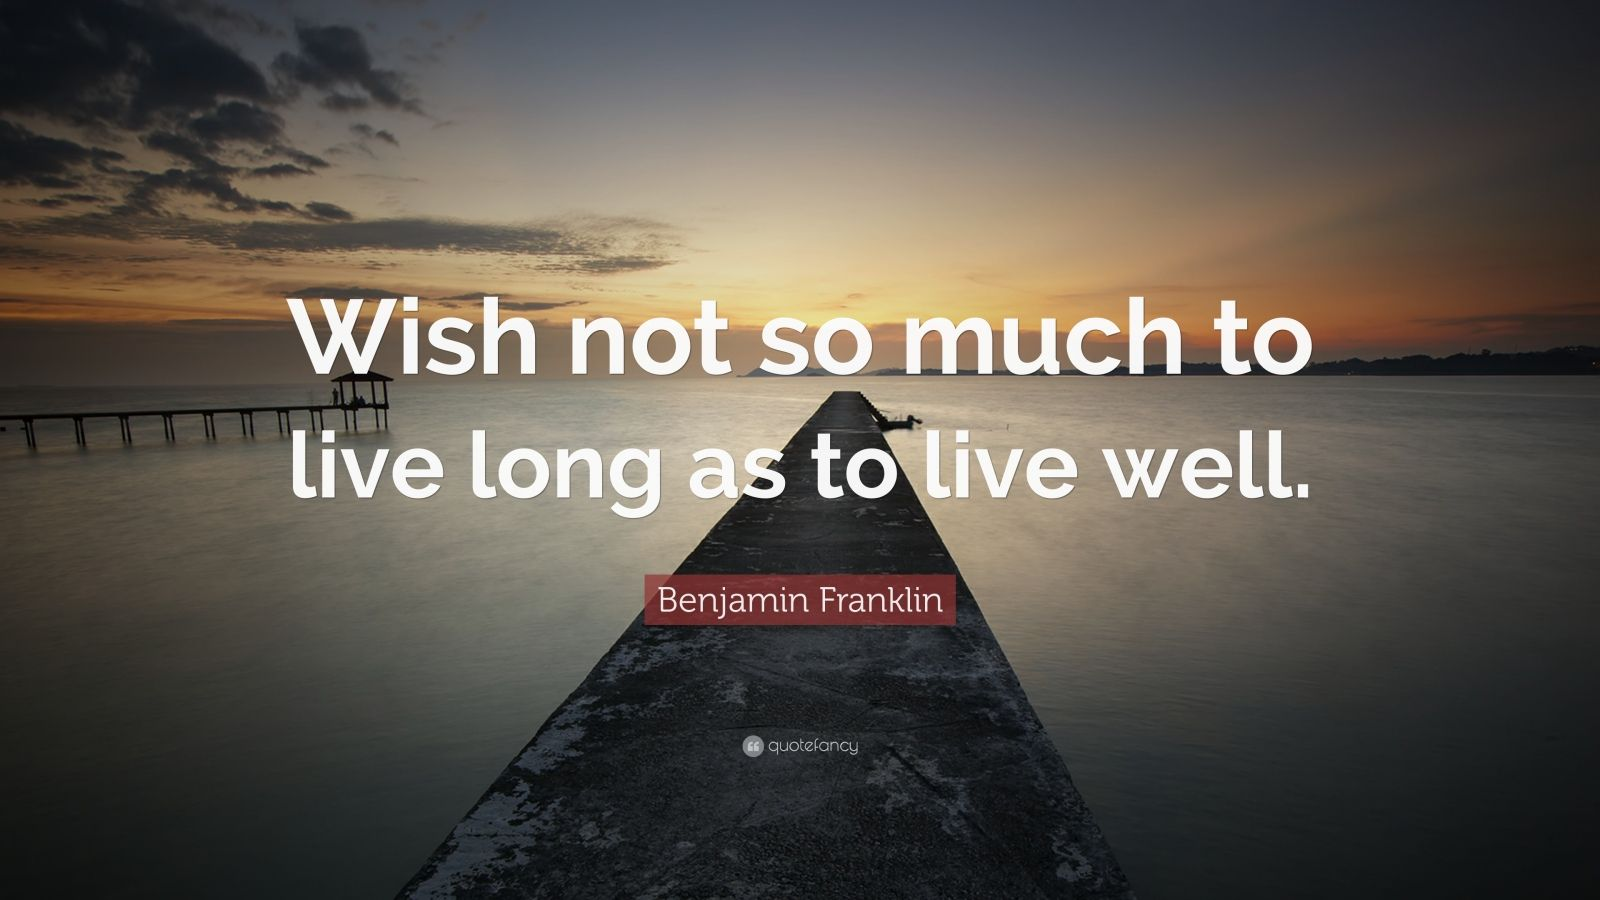 """Benjamin Franklin Quote: """"Wish not so much to live long as to live well."""""""